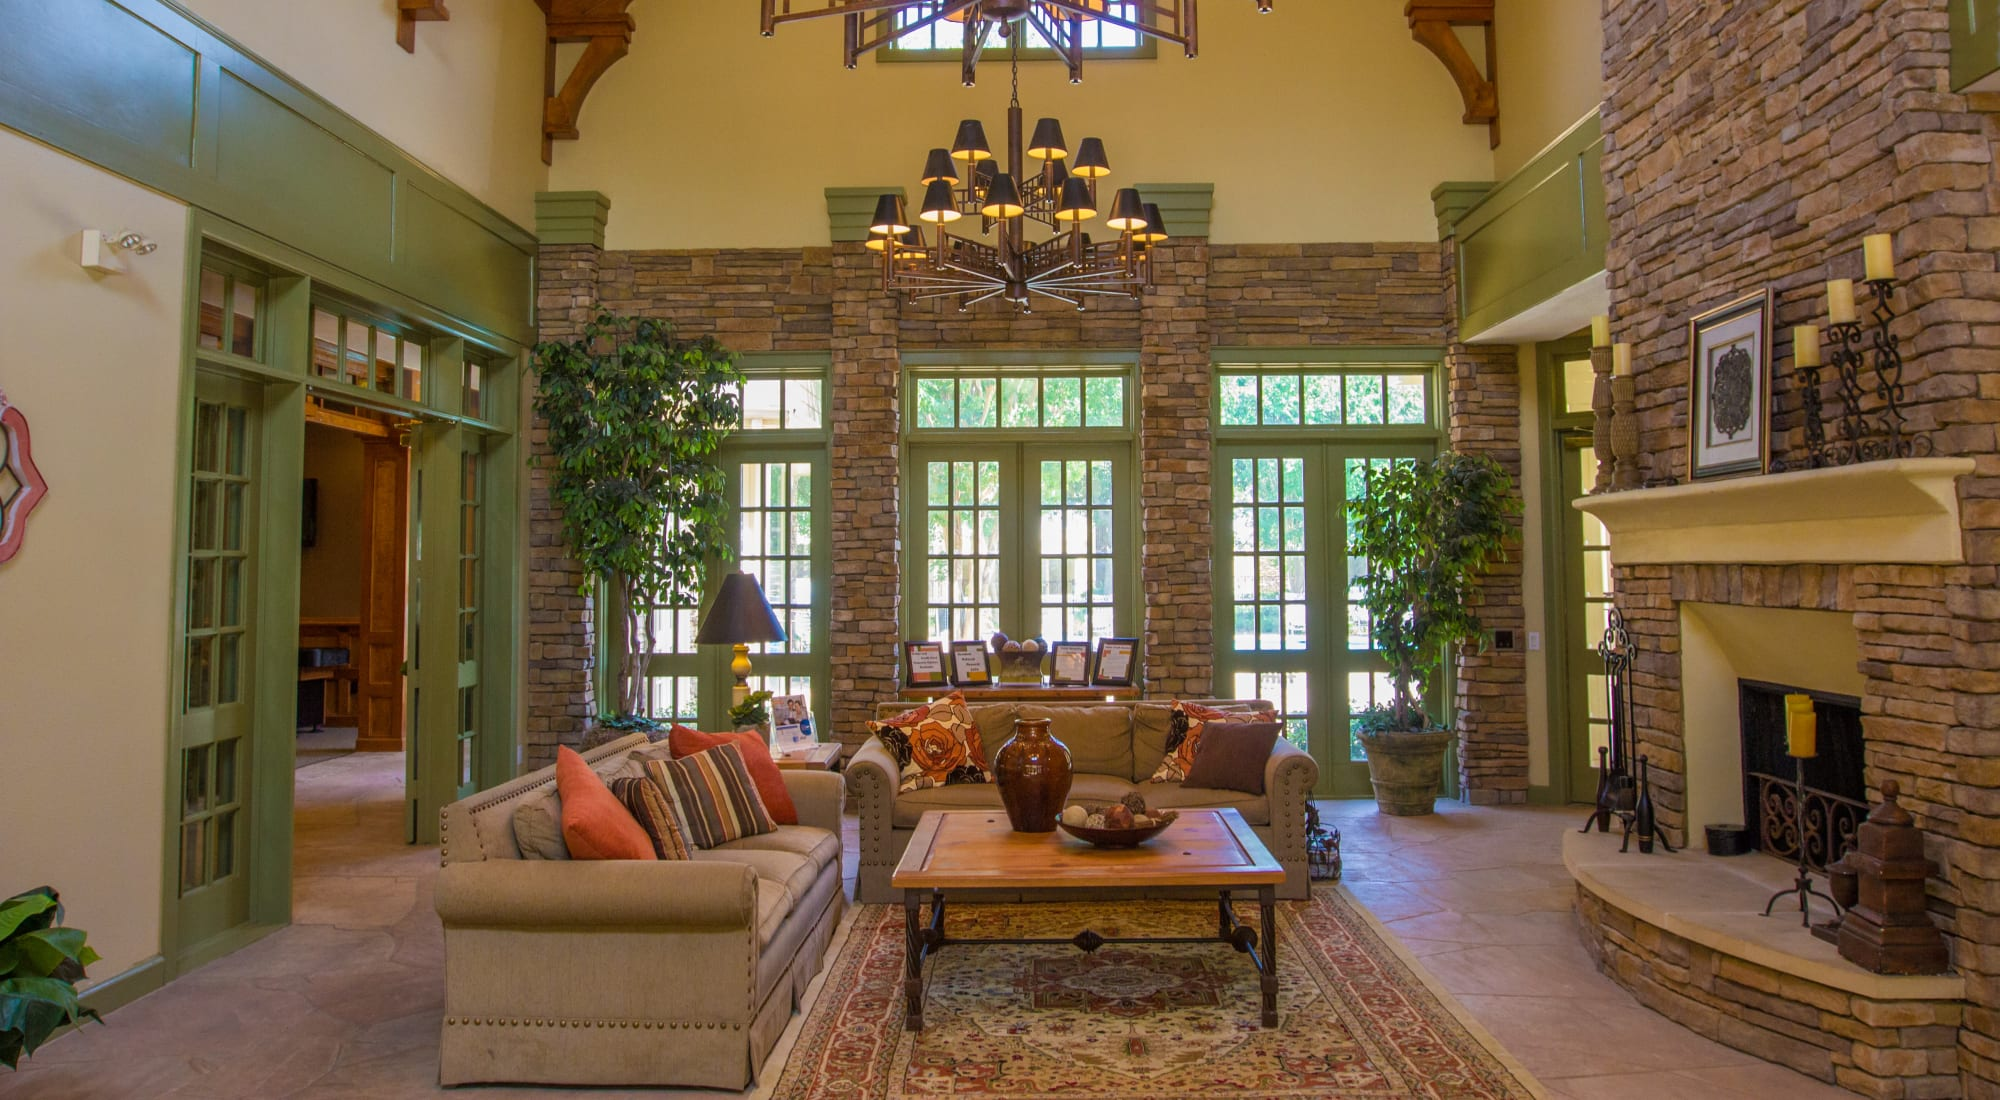 Photo gallery at The Lodge at River Park in Fort Worth, Texas